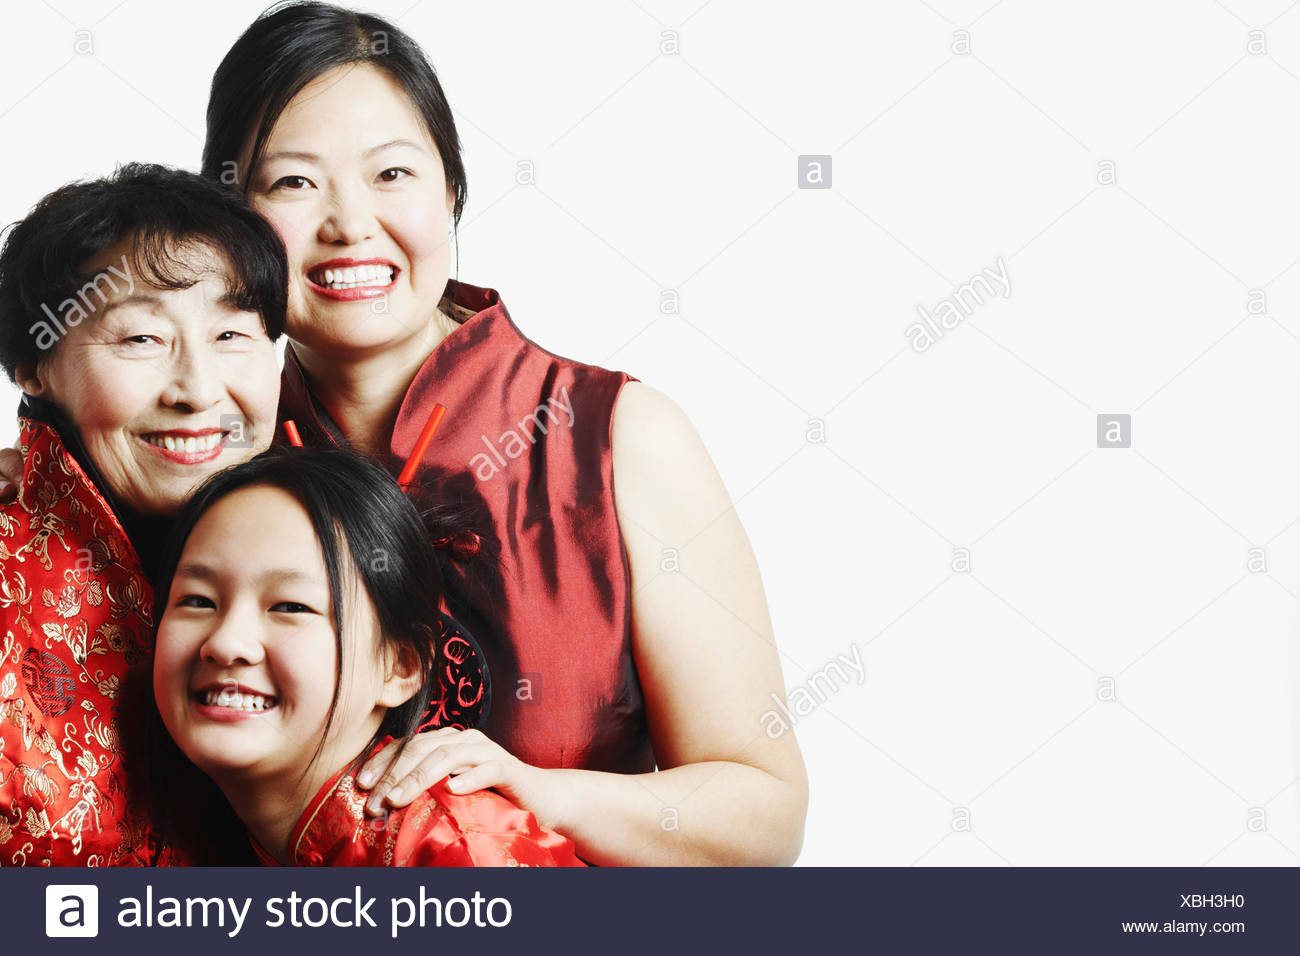 Portrait of a mother with her daughter and granddaughter smiling - Stock Image